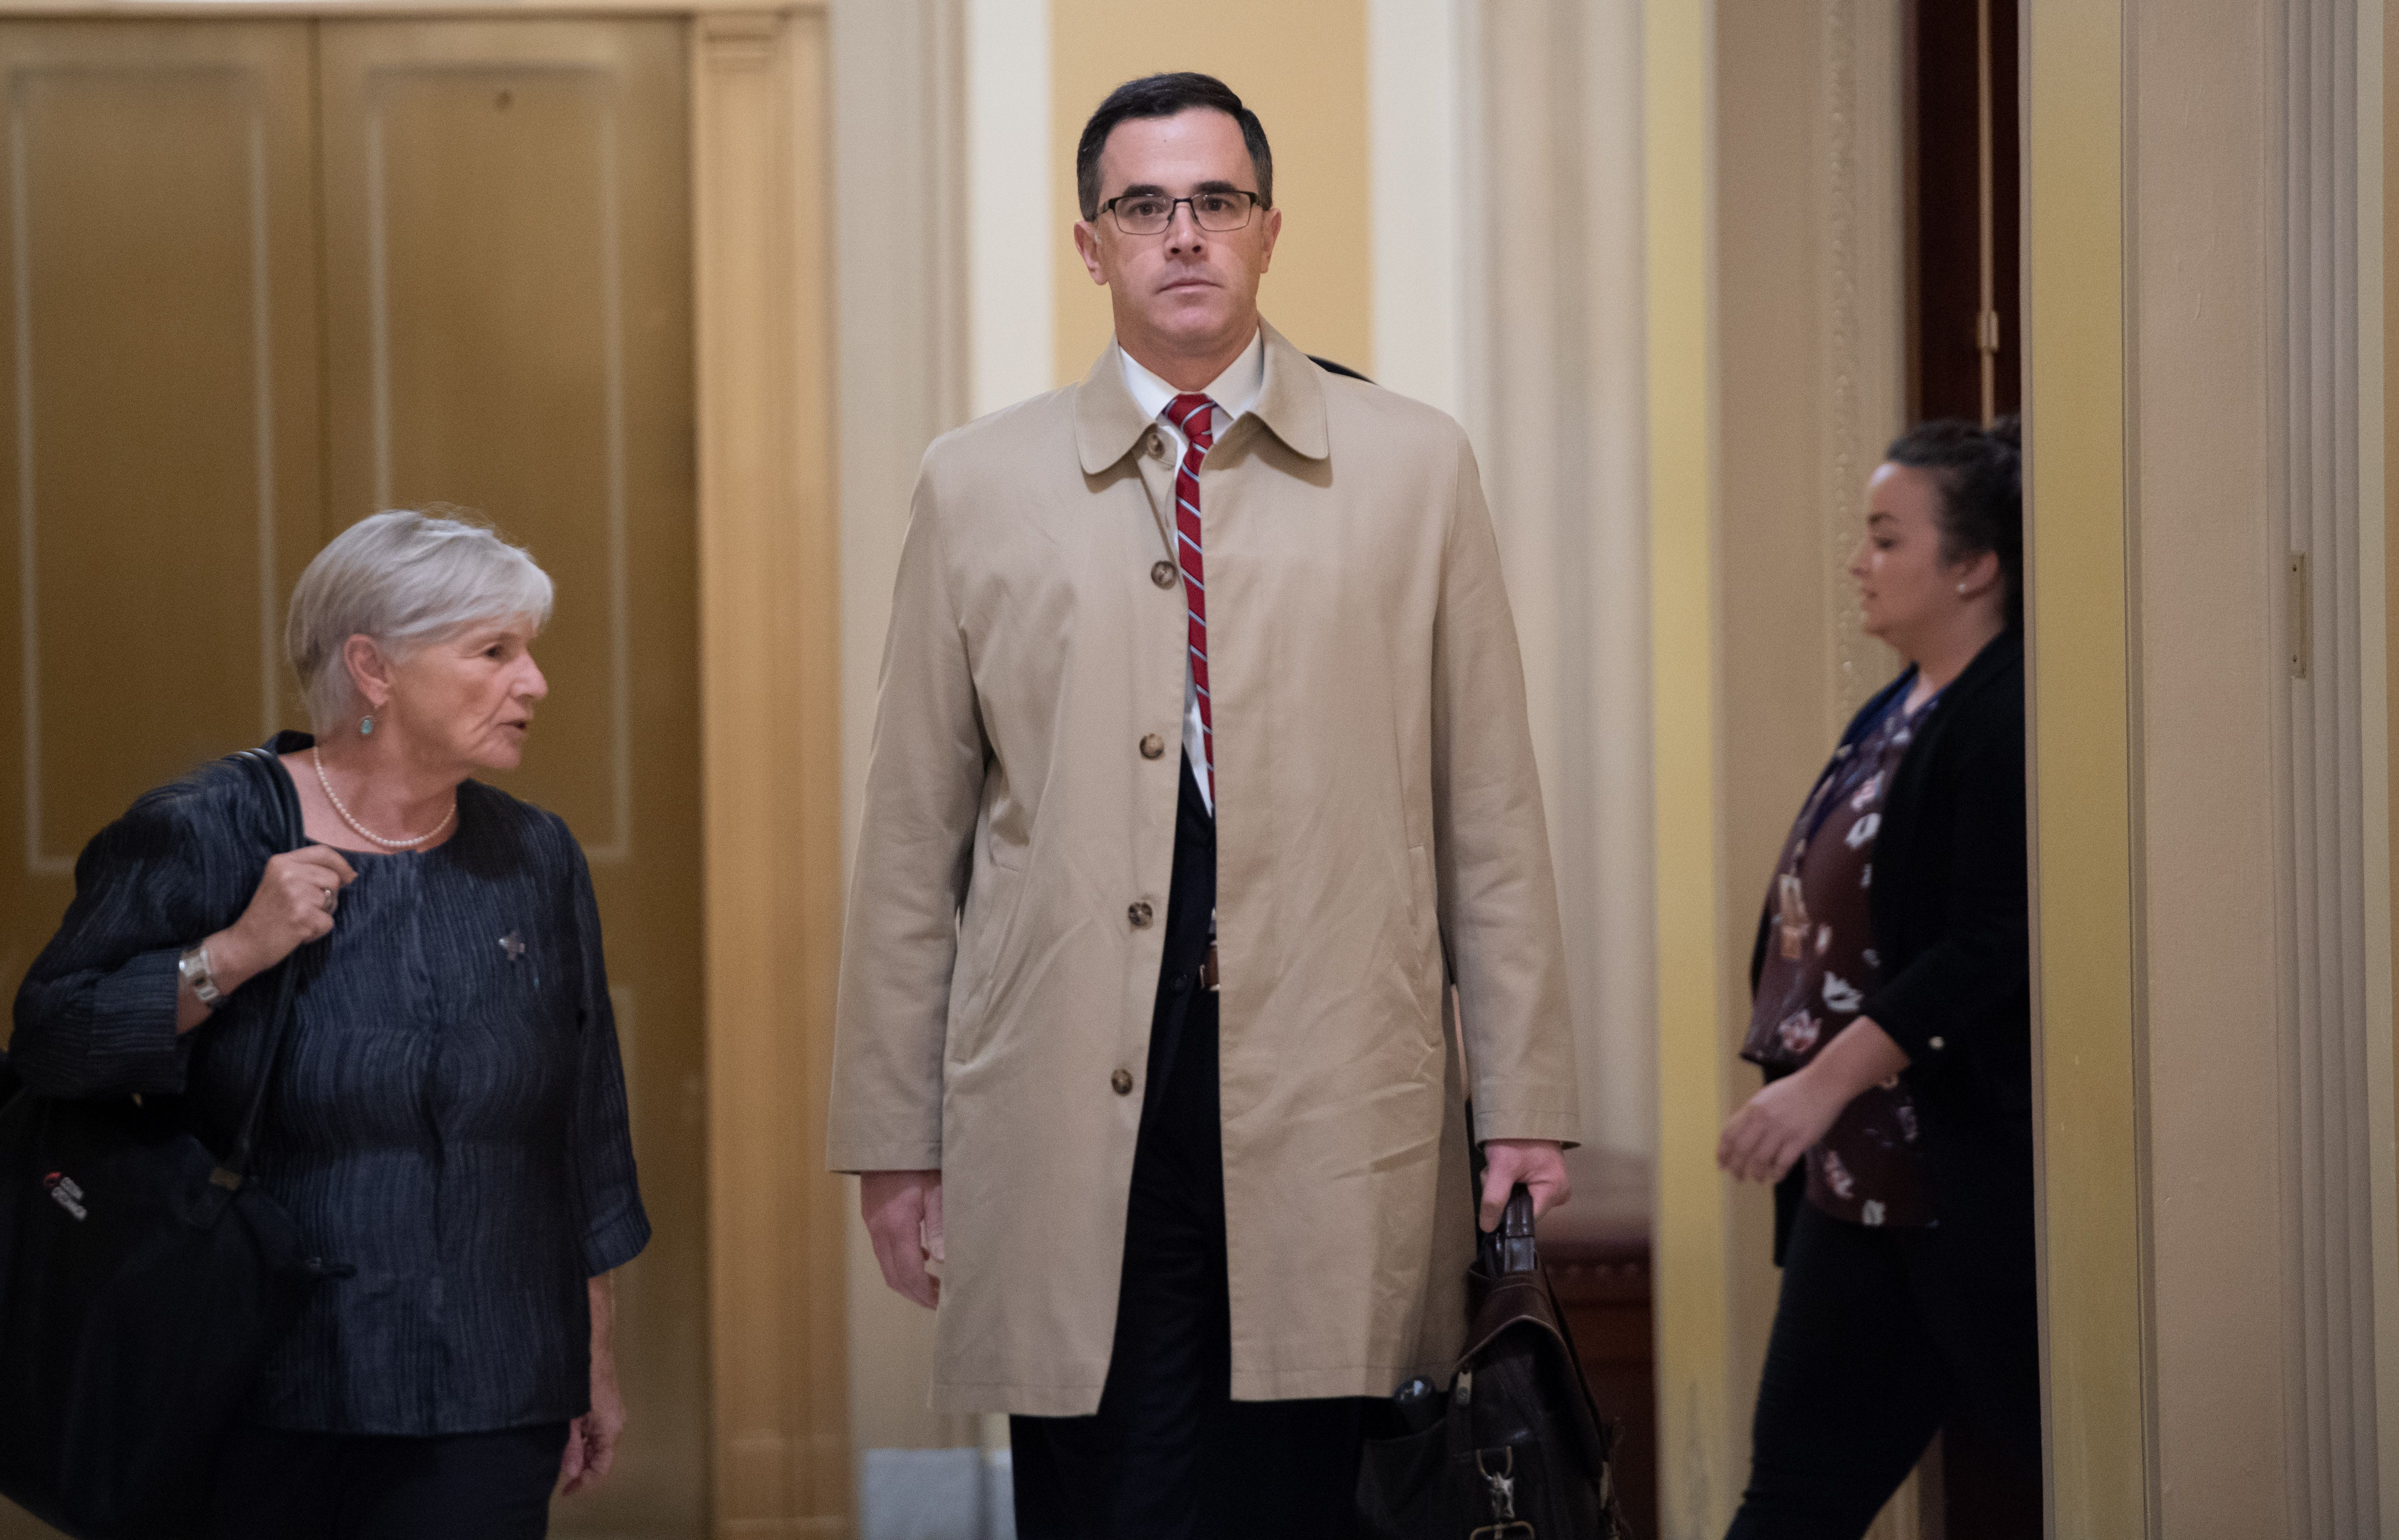 Tim Morrison arrives for a deposition at the US Capitol in Washington, DC, on Oct. 31.